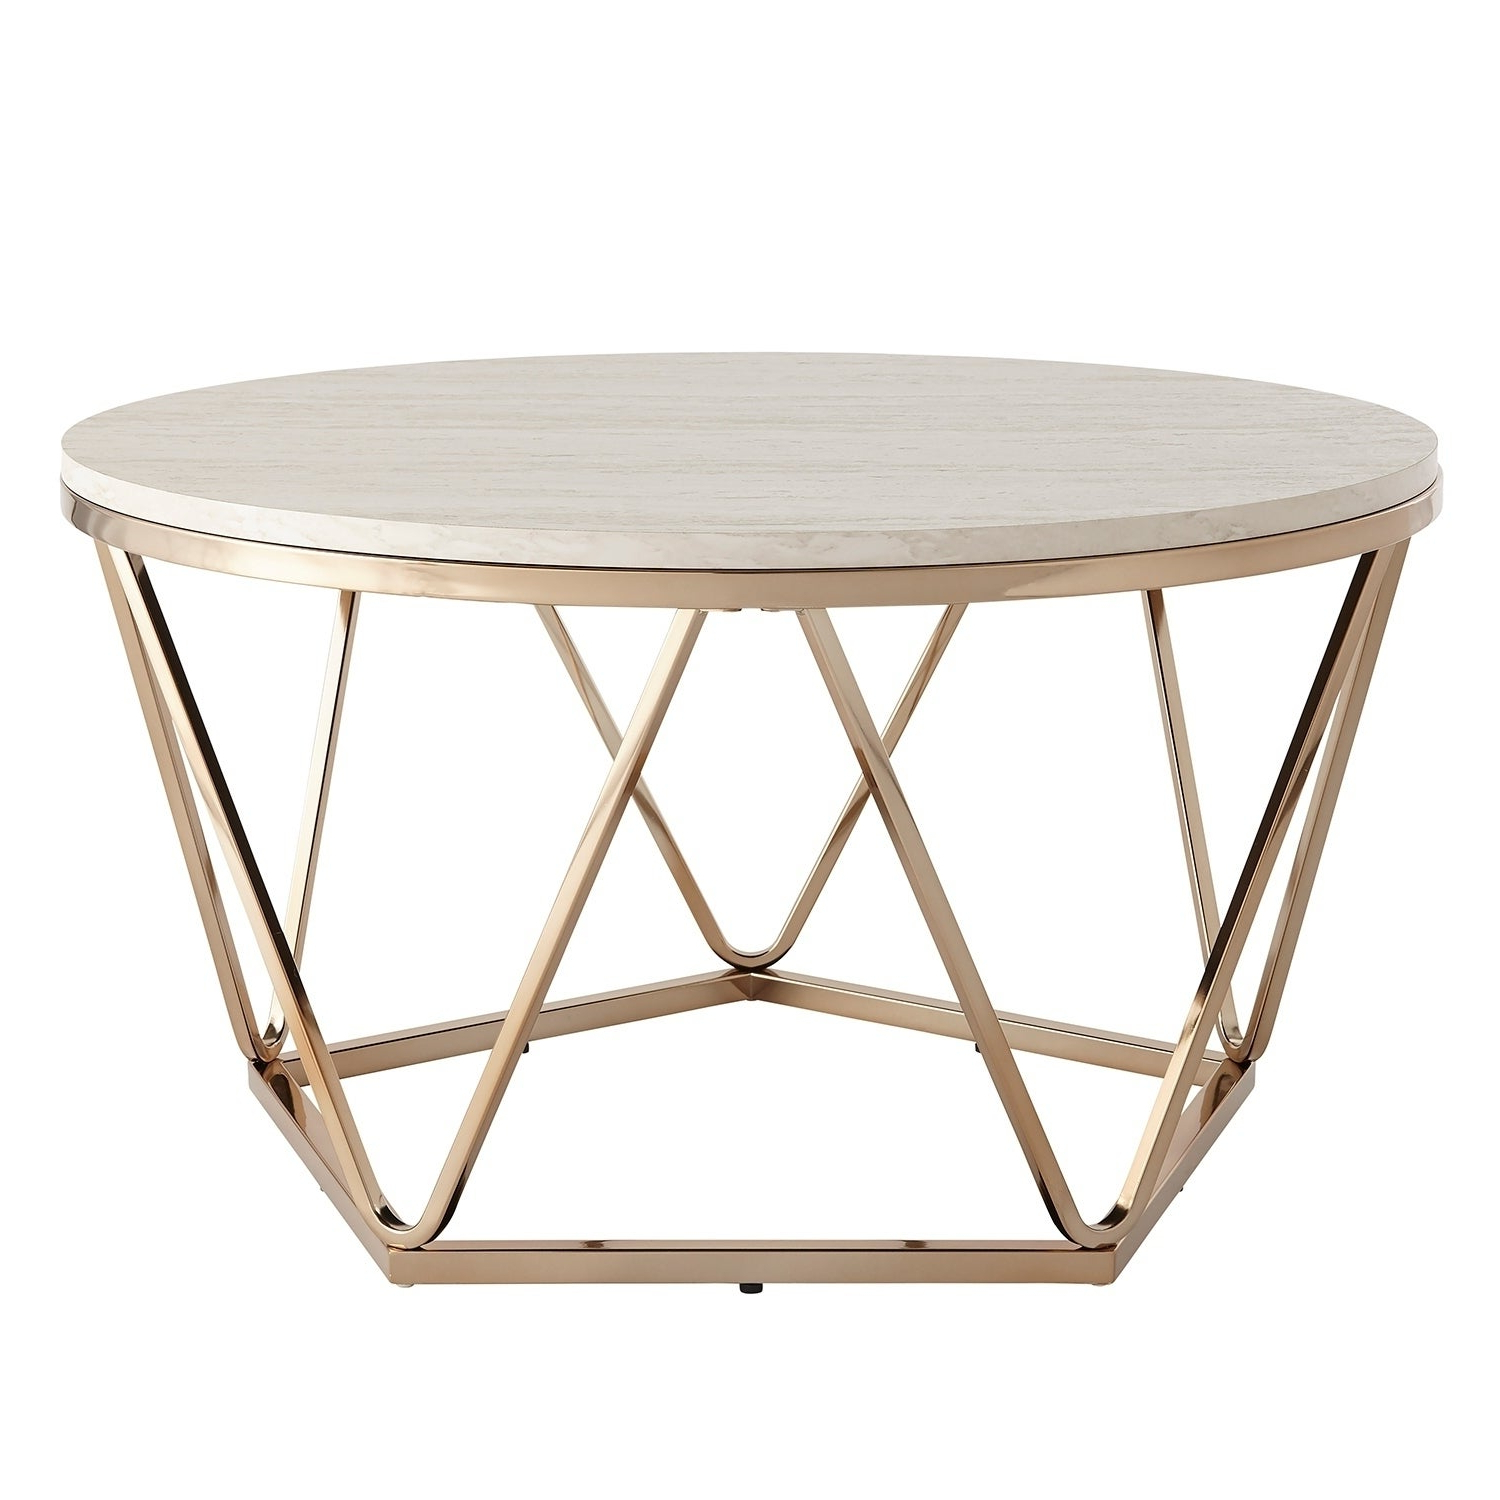 Well Liked Silver Orchid Henderson Faux Stone Round End Tables Regarding Silver Orchid Henderson Faux Stone Goldtone Round Coffee Table (View 9 of 20)